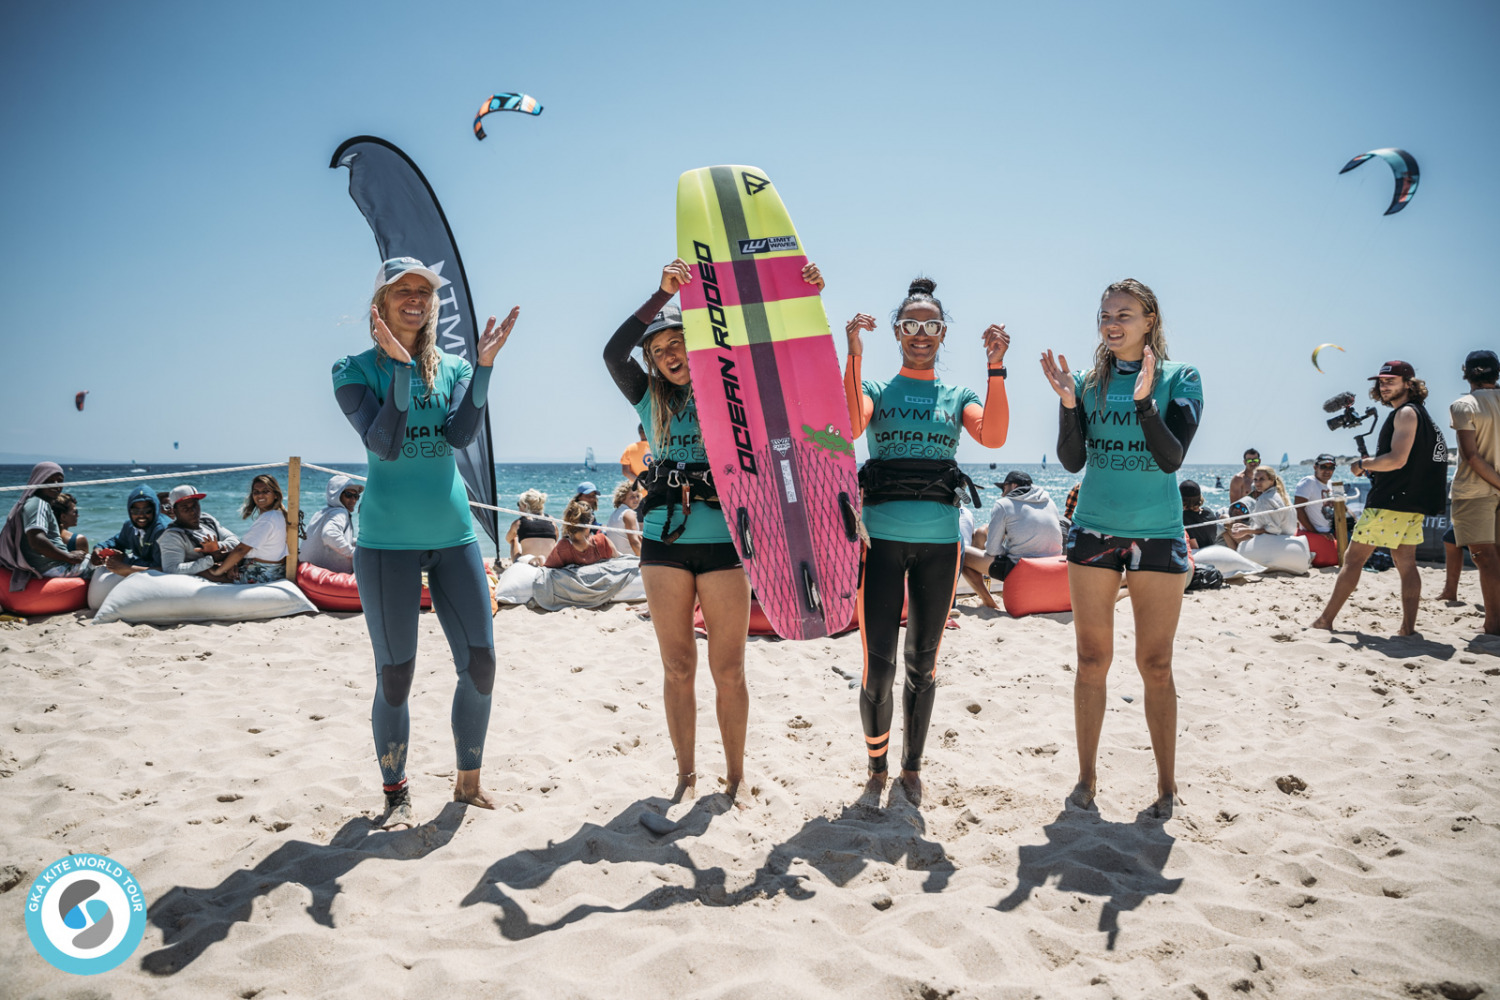 GKA_KWT_Surf_Tarifa_Ydwer_Day_03_0817